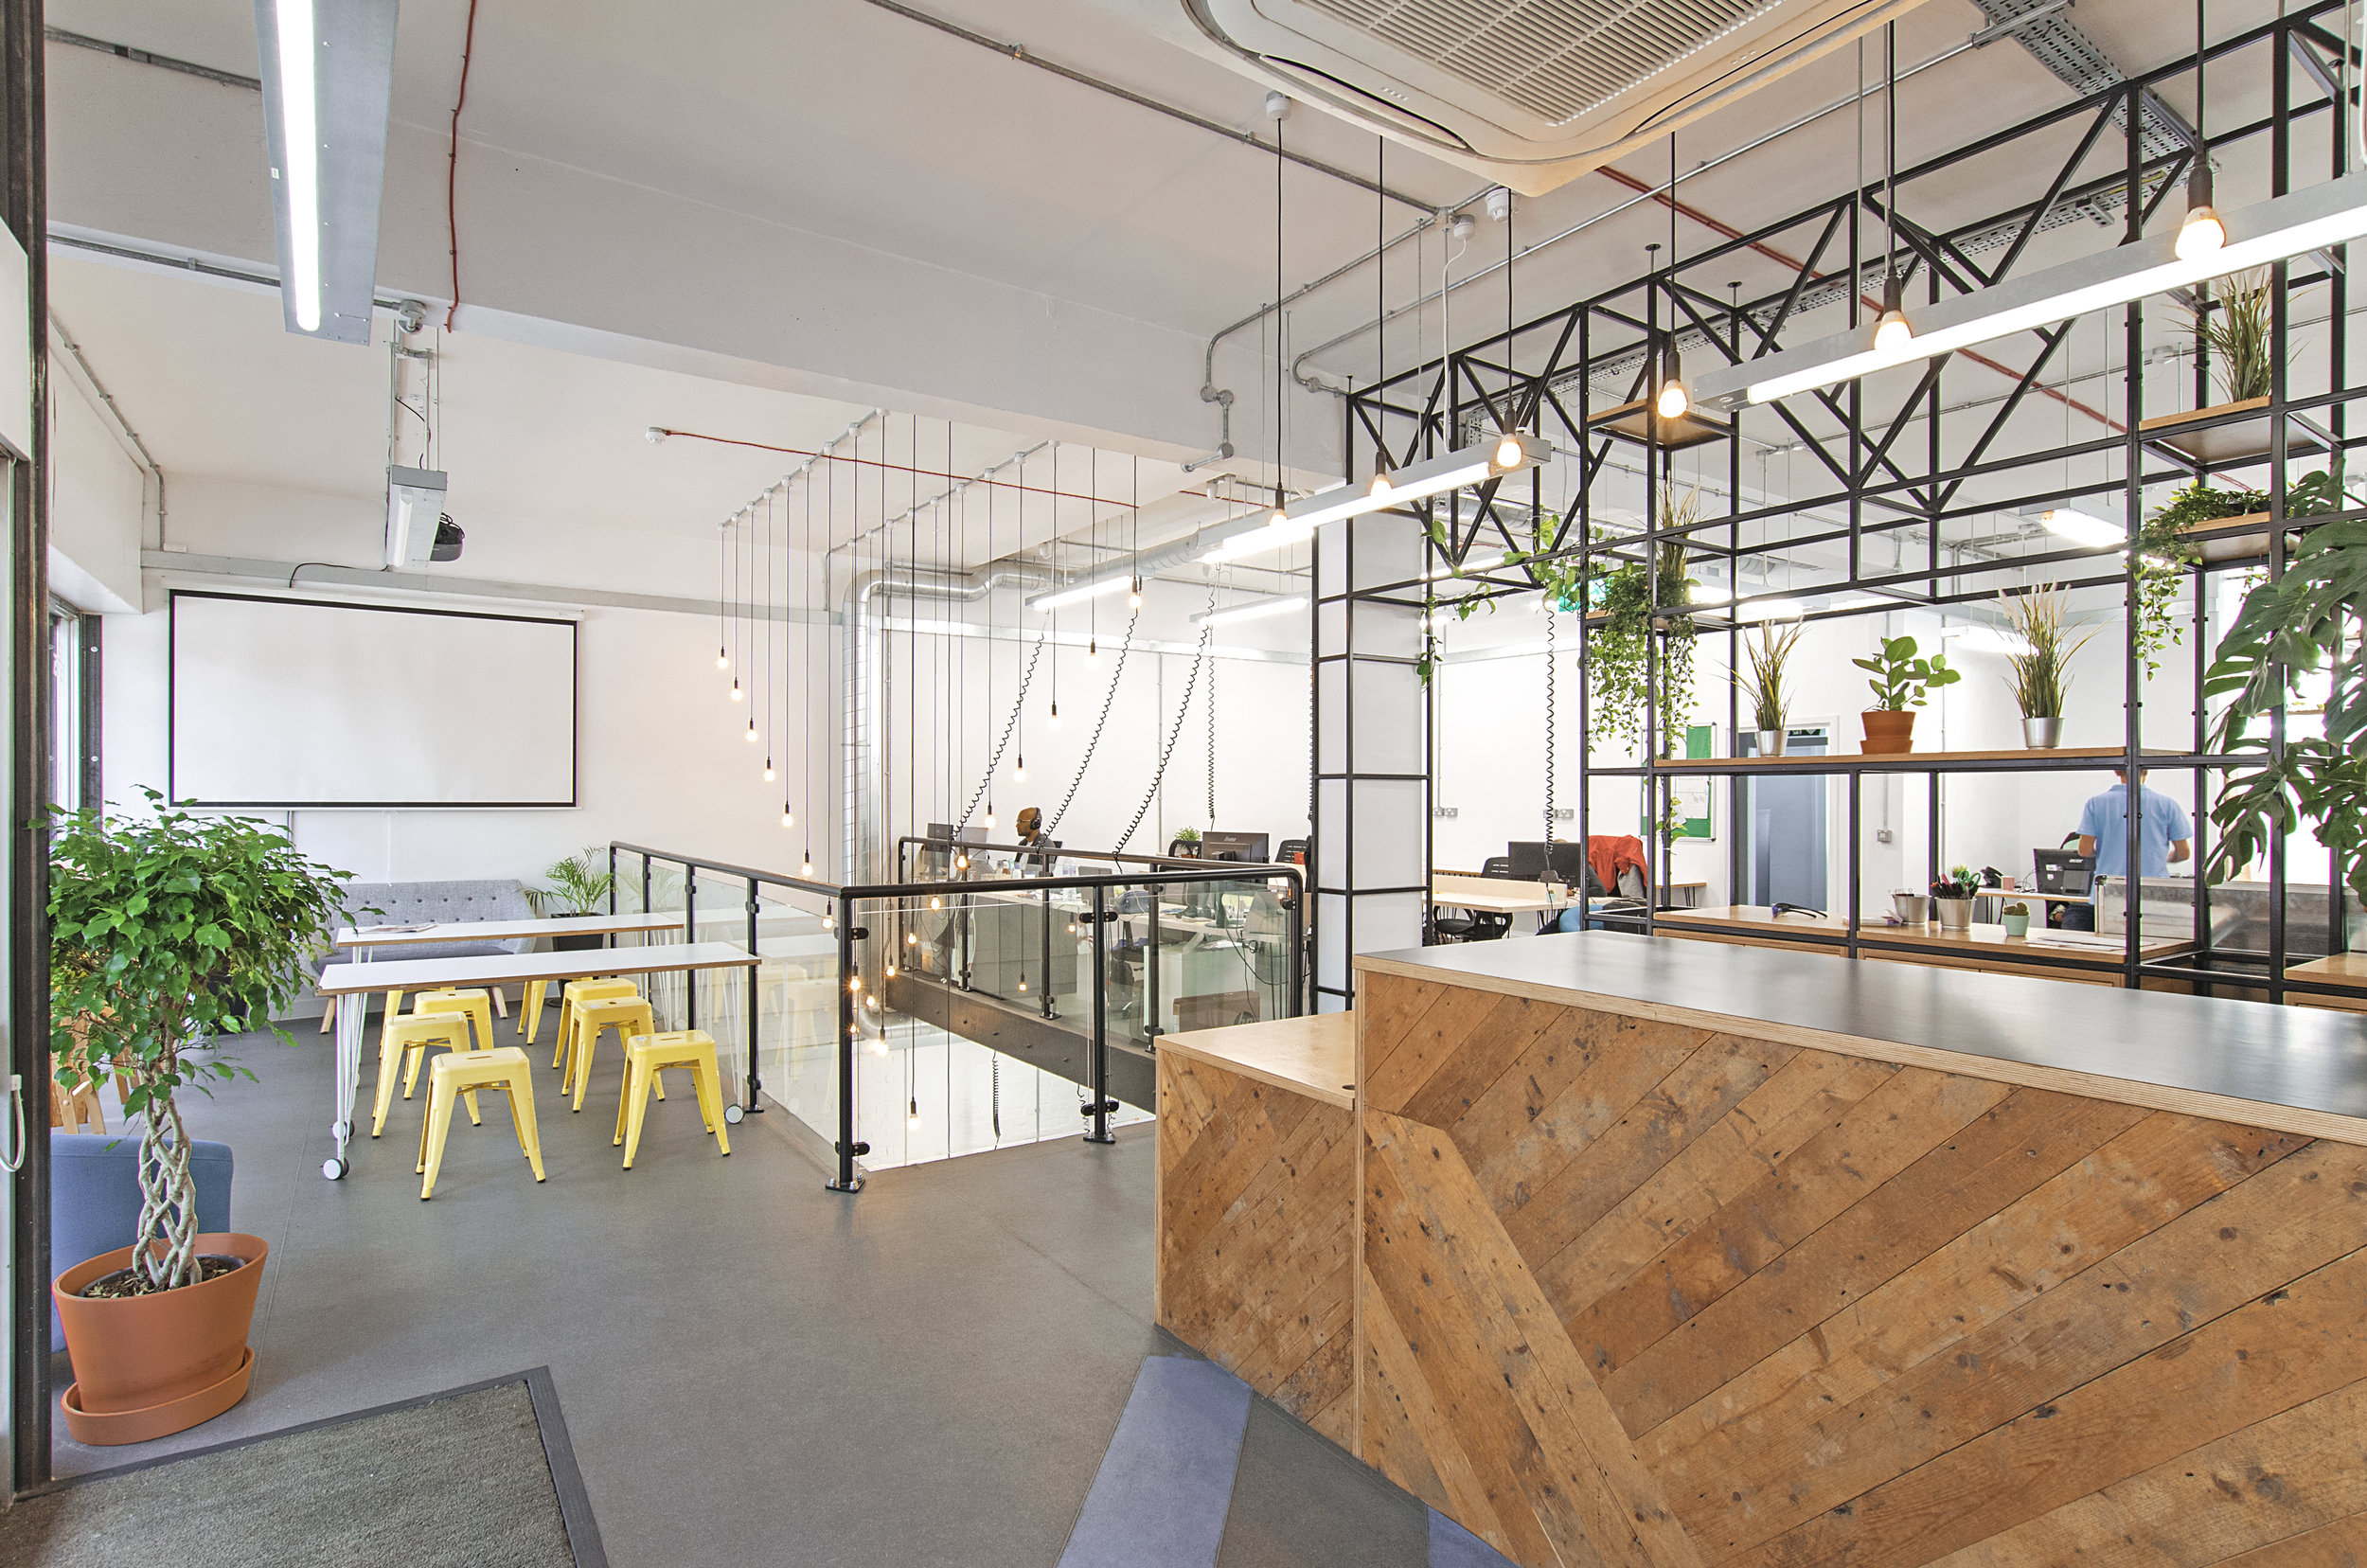 Poplar - Our new office is modern, stylish and strikingly bold. Designed with for the graceful yet practical aesthetic to have you energized yet feeling cool, calm and collected for any tasks